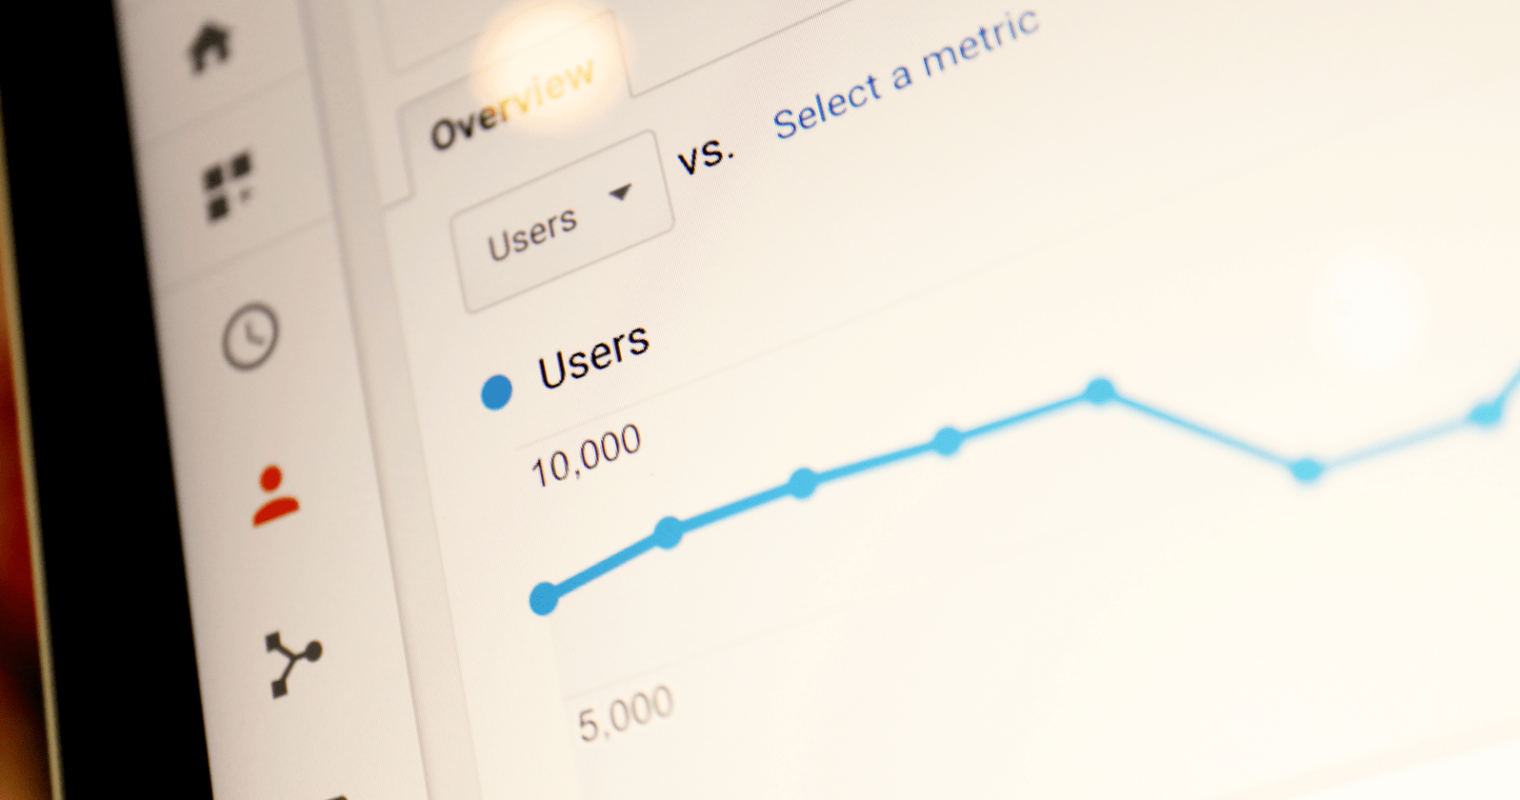 Google: Make Content More Relevant to Recover from August Algorithm Update